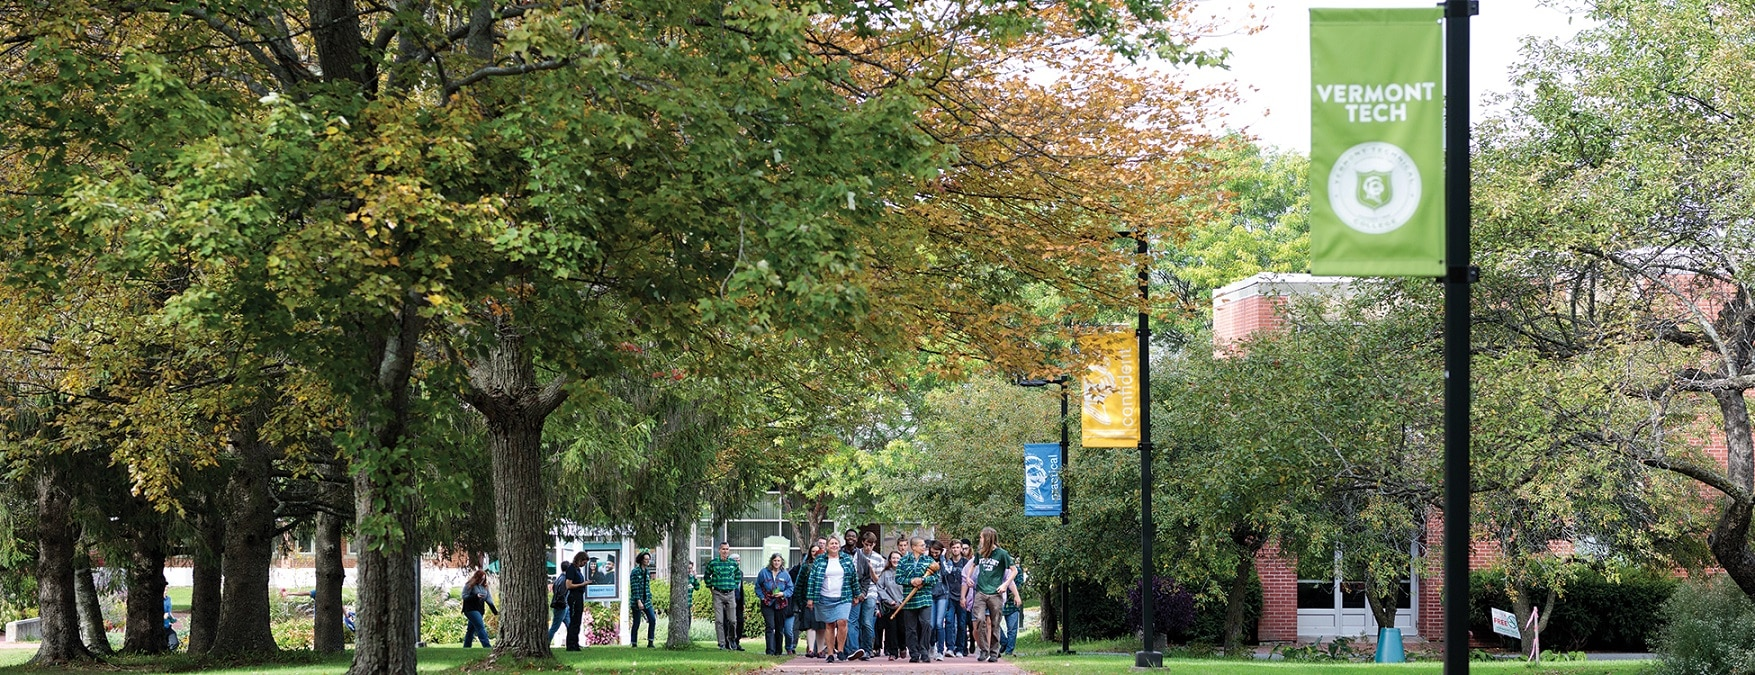 Students, faculty, and staff march up walkway, Randolph Center campus